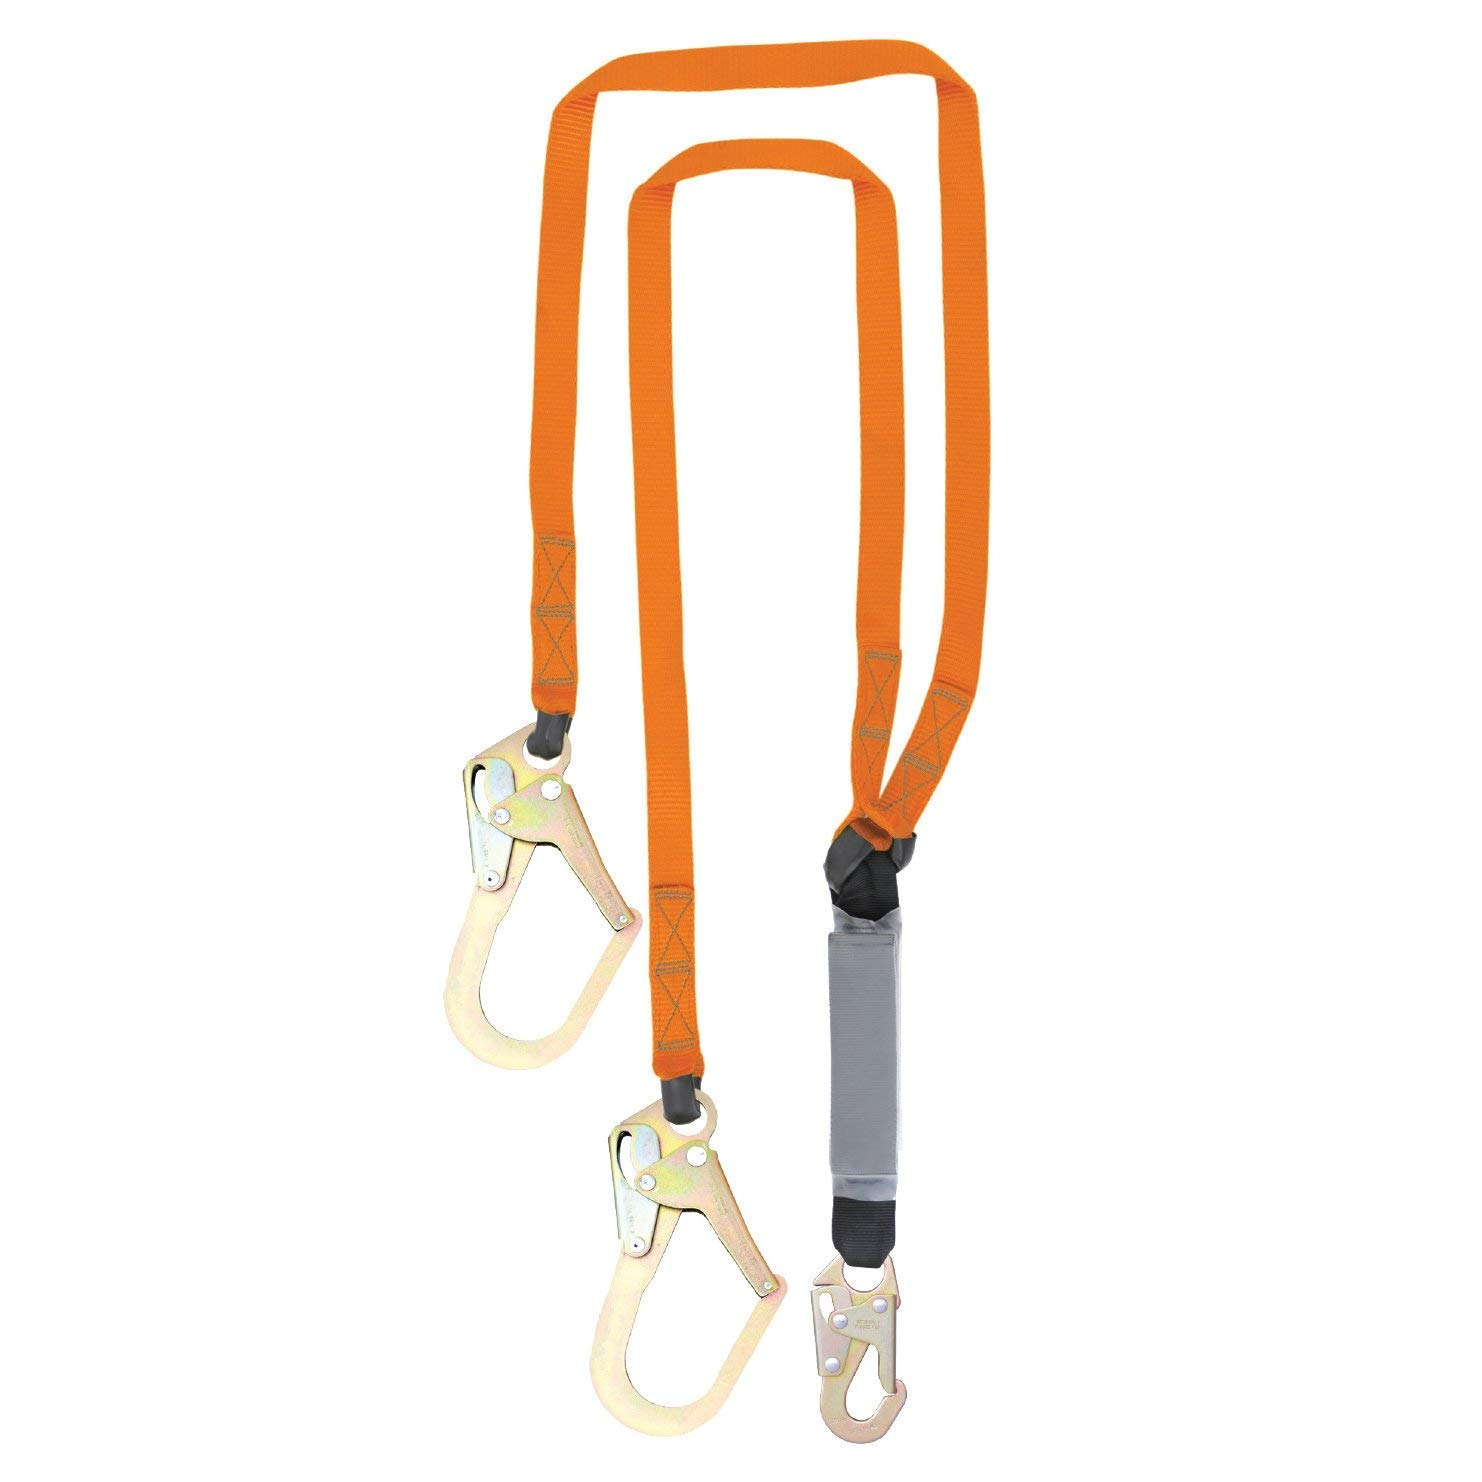 Malta Dynamics Fall Protection Six-foot Double Leg External Shock Absorbing Lanyard with Two Rebar Hooks and One Steel Snap Hook, OSHA/ANSI Compliant